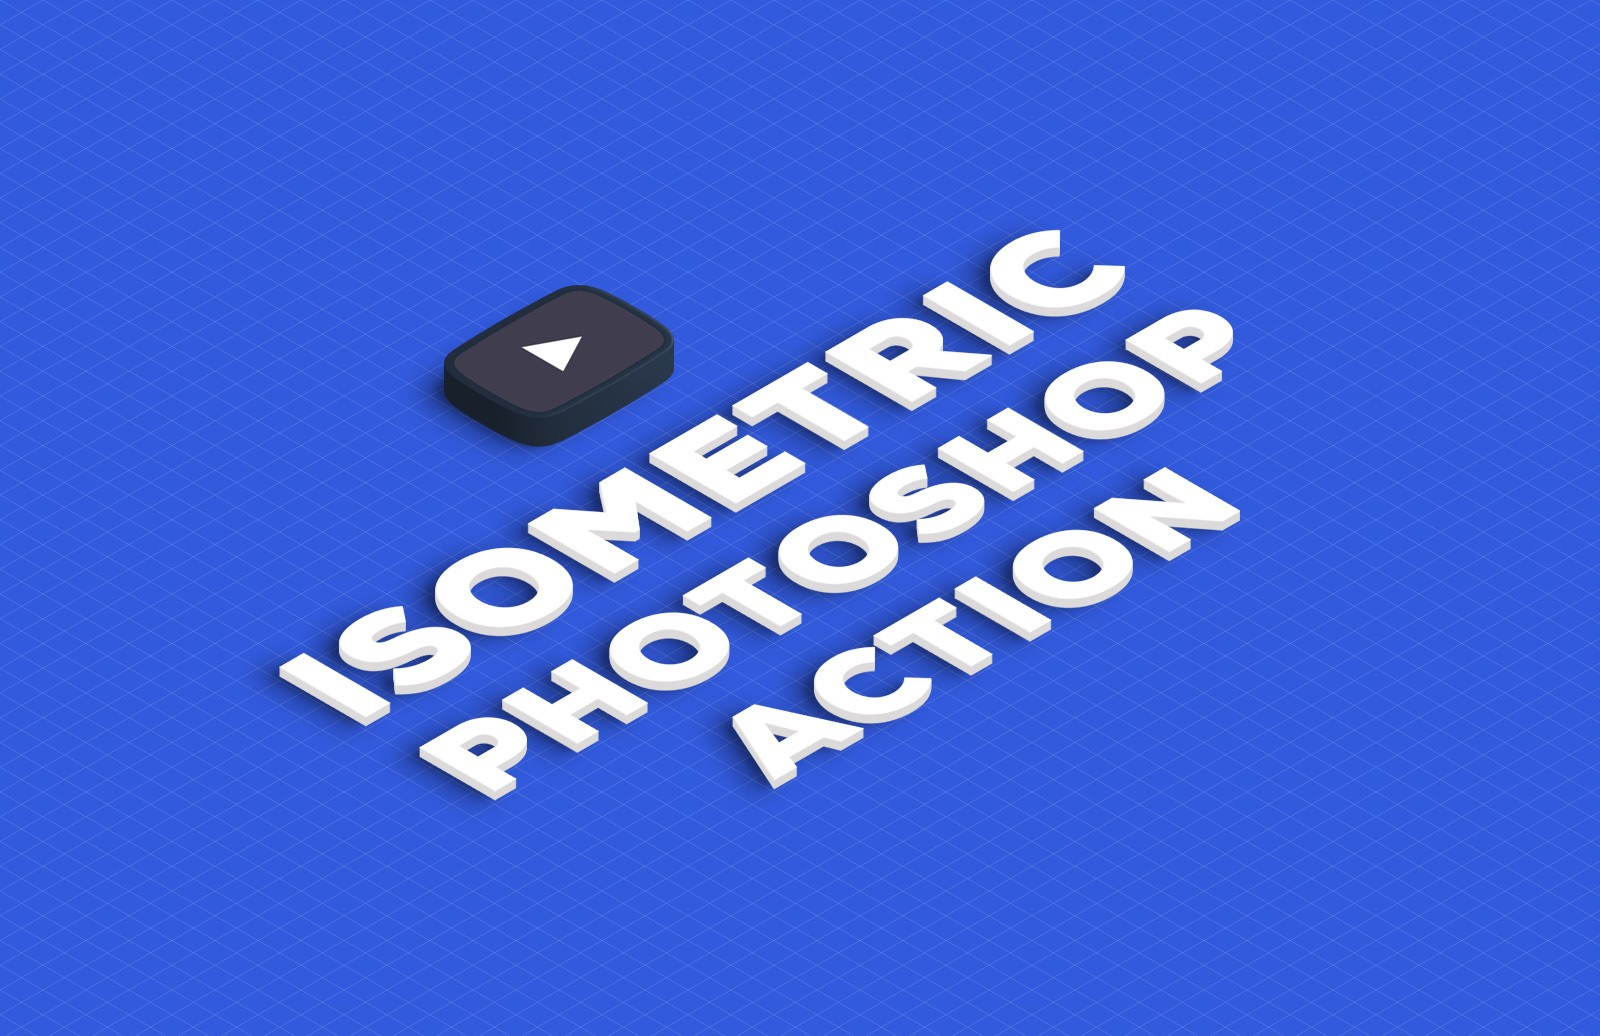 Isometric Photoshop Action